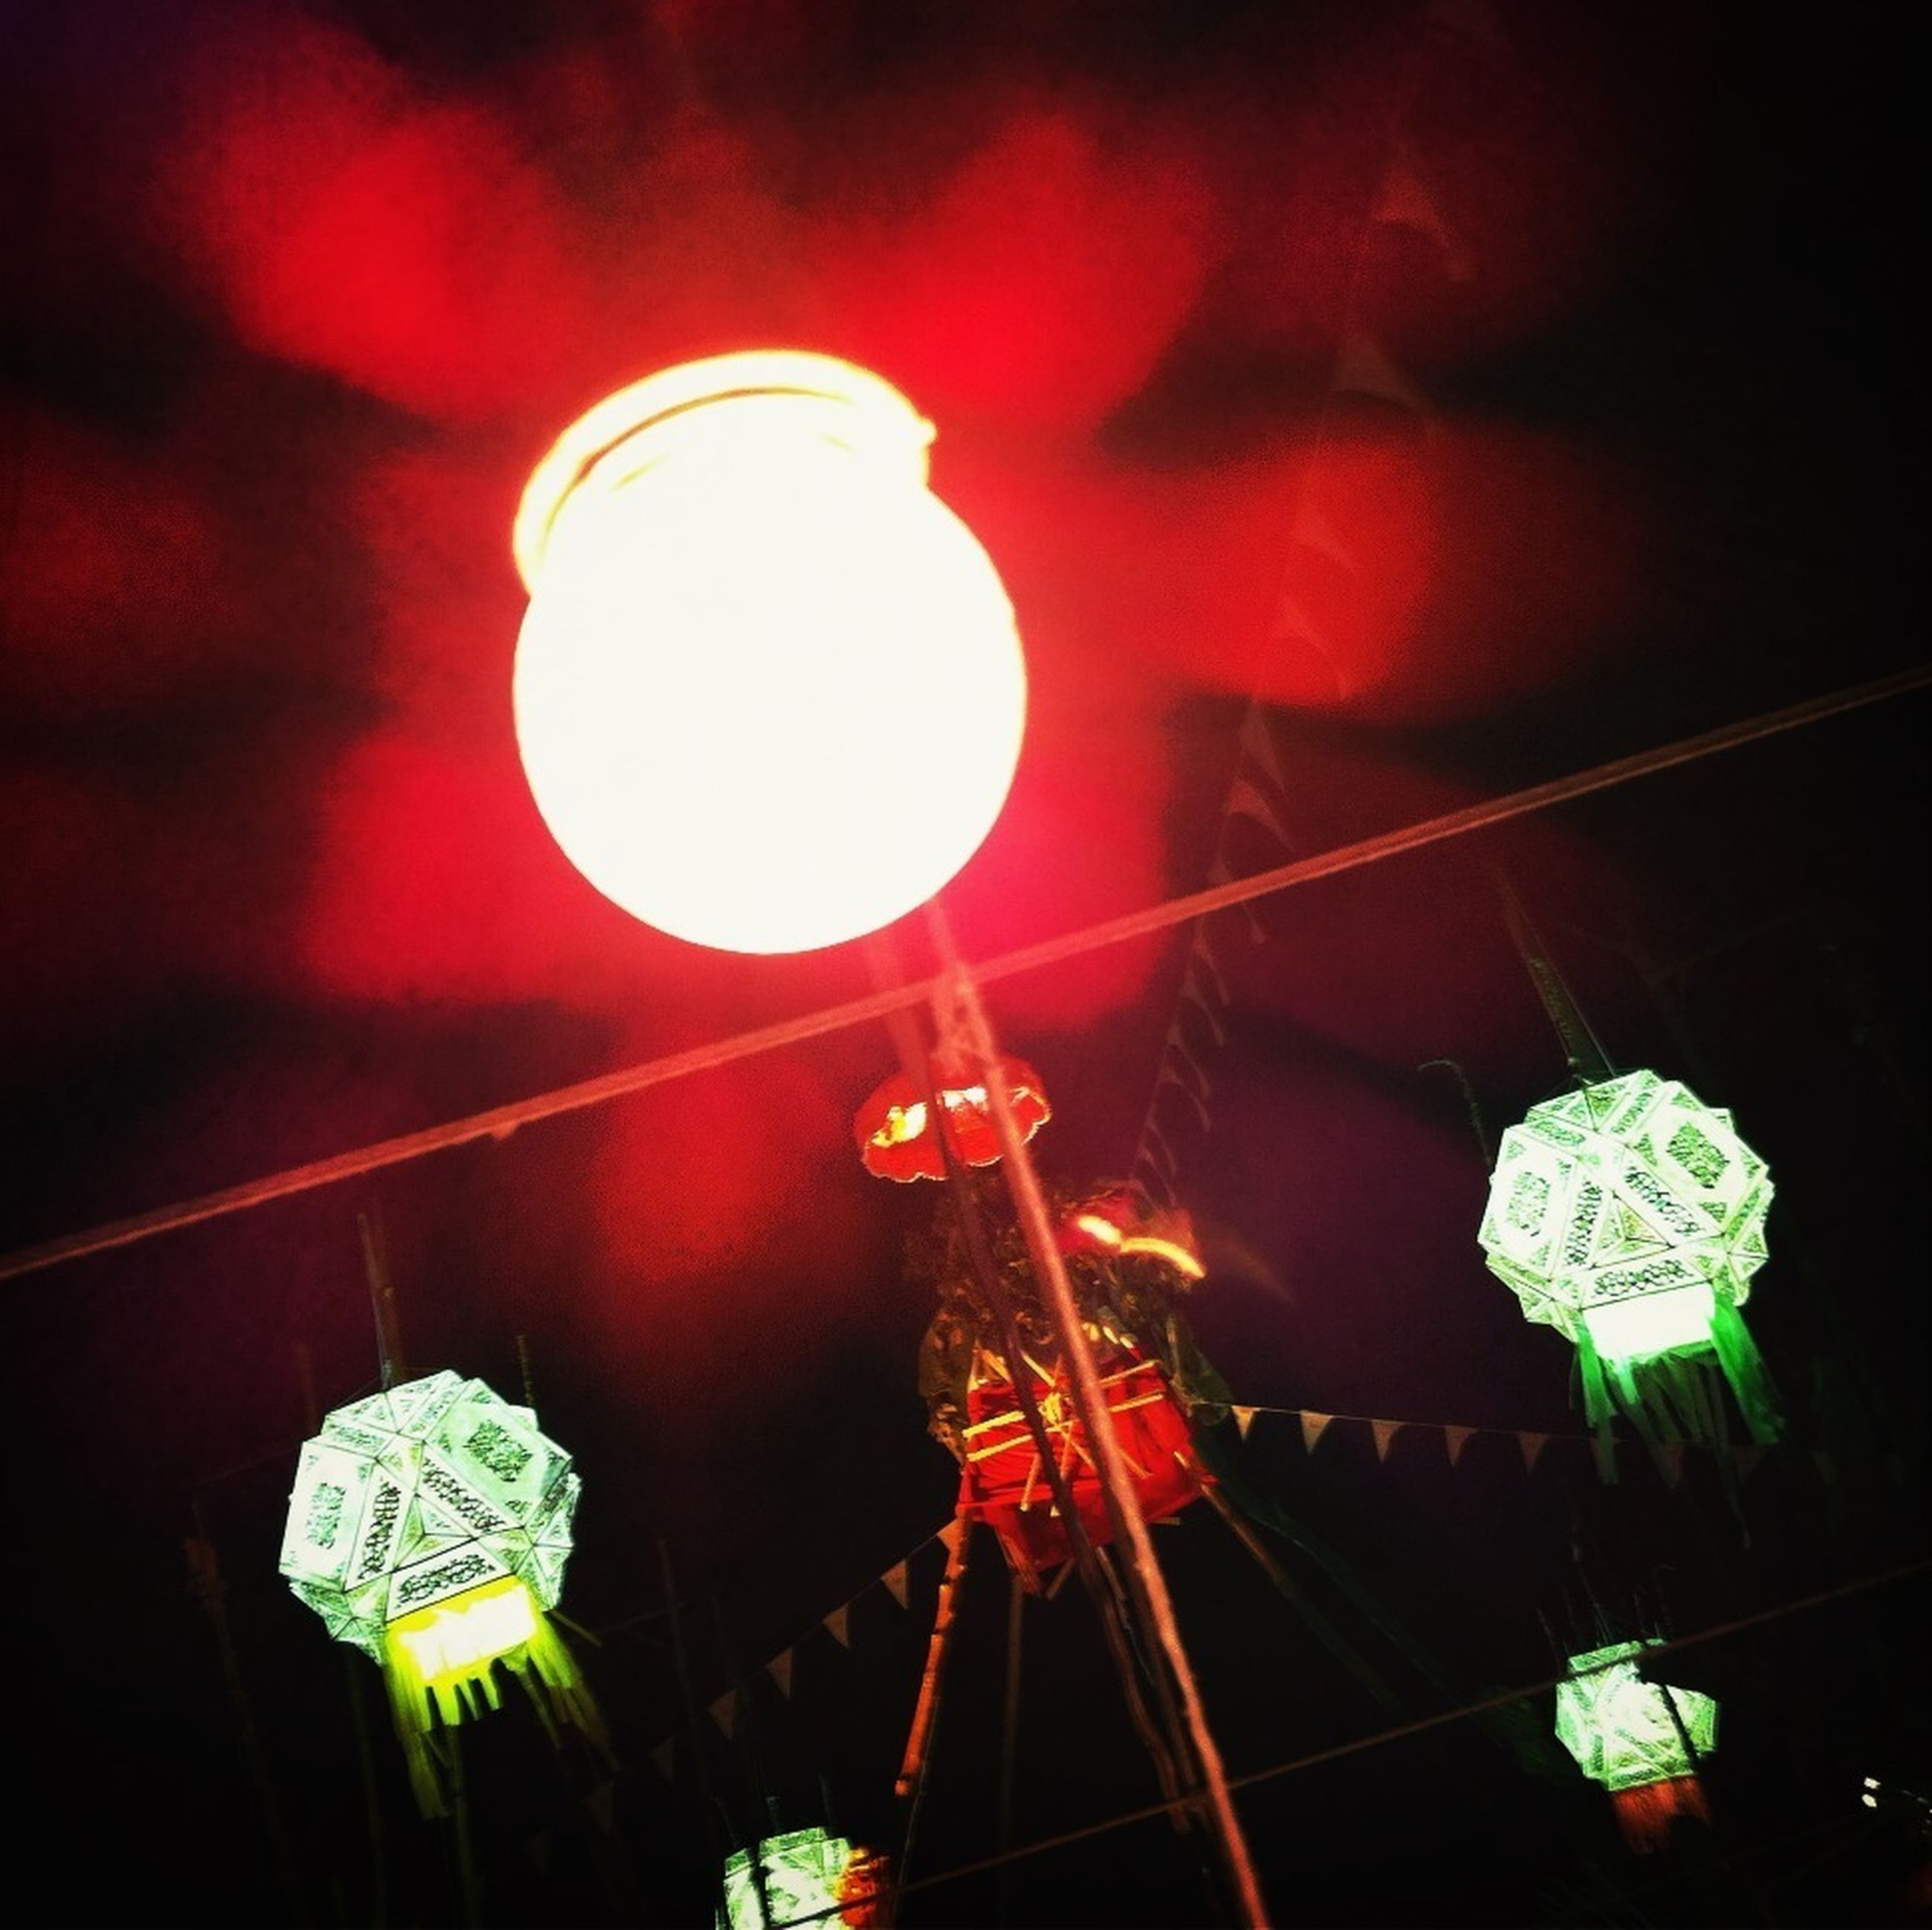 illuminated, night, lighting equipment, low angle view, celebration, decoration, hanging, electricity, electric light, glowing, red, arts culture and entertainment, tradition, light - natural phenomenon, christmas, christmas lights, christmas decoration, lit, lantern, decor